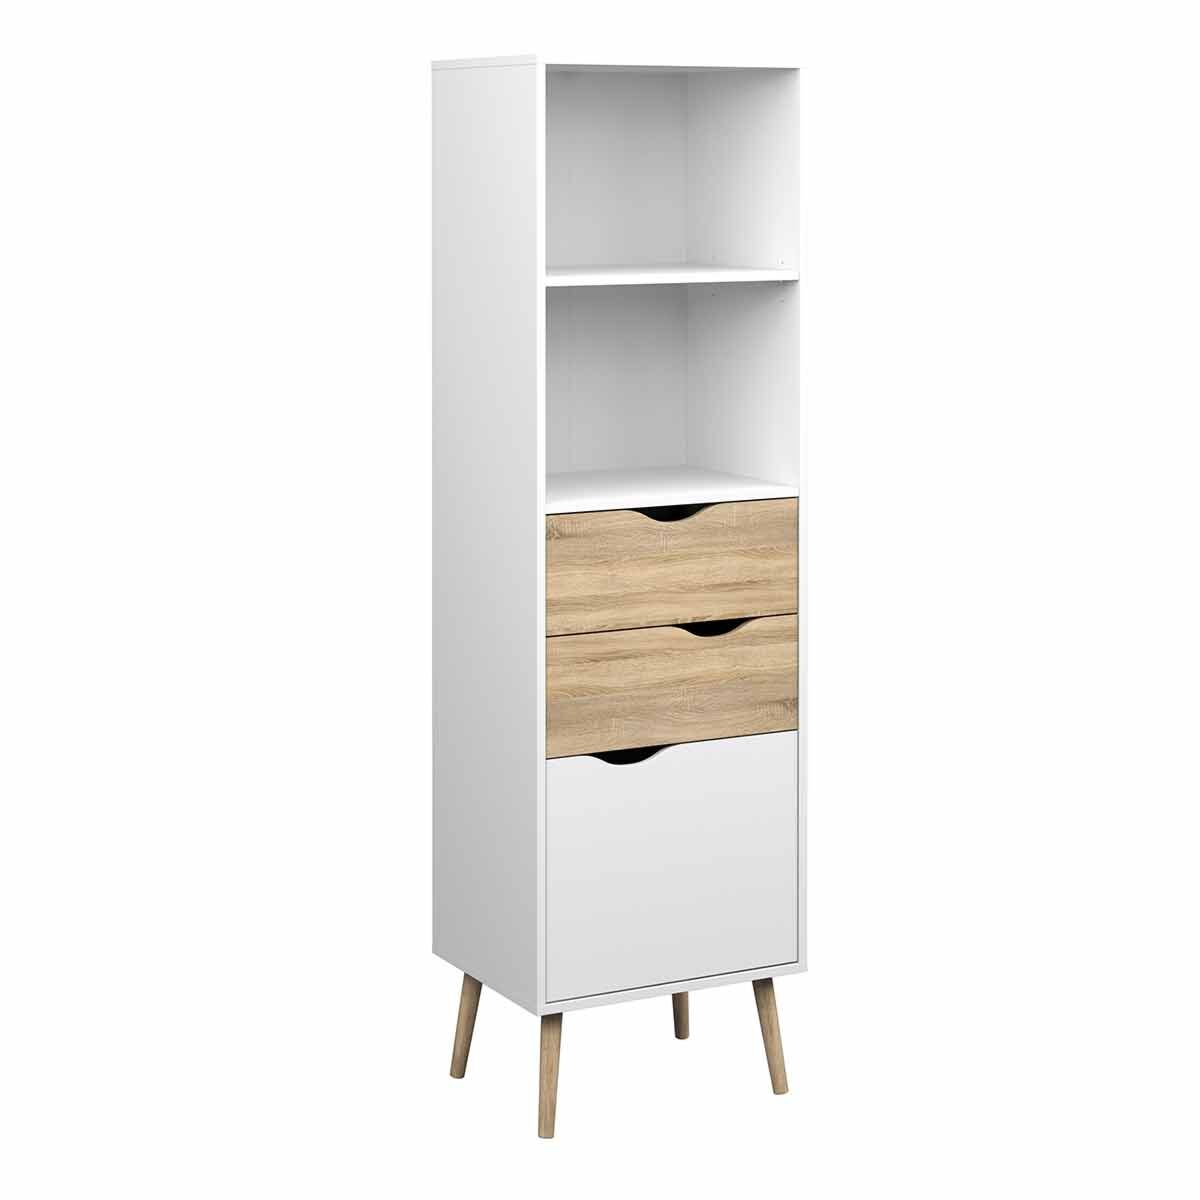 Oslo Bookcase with 2 Drawers 1 Door